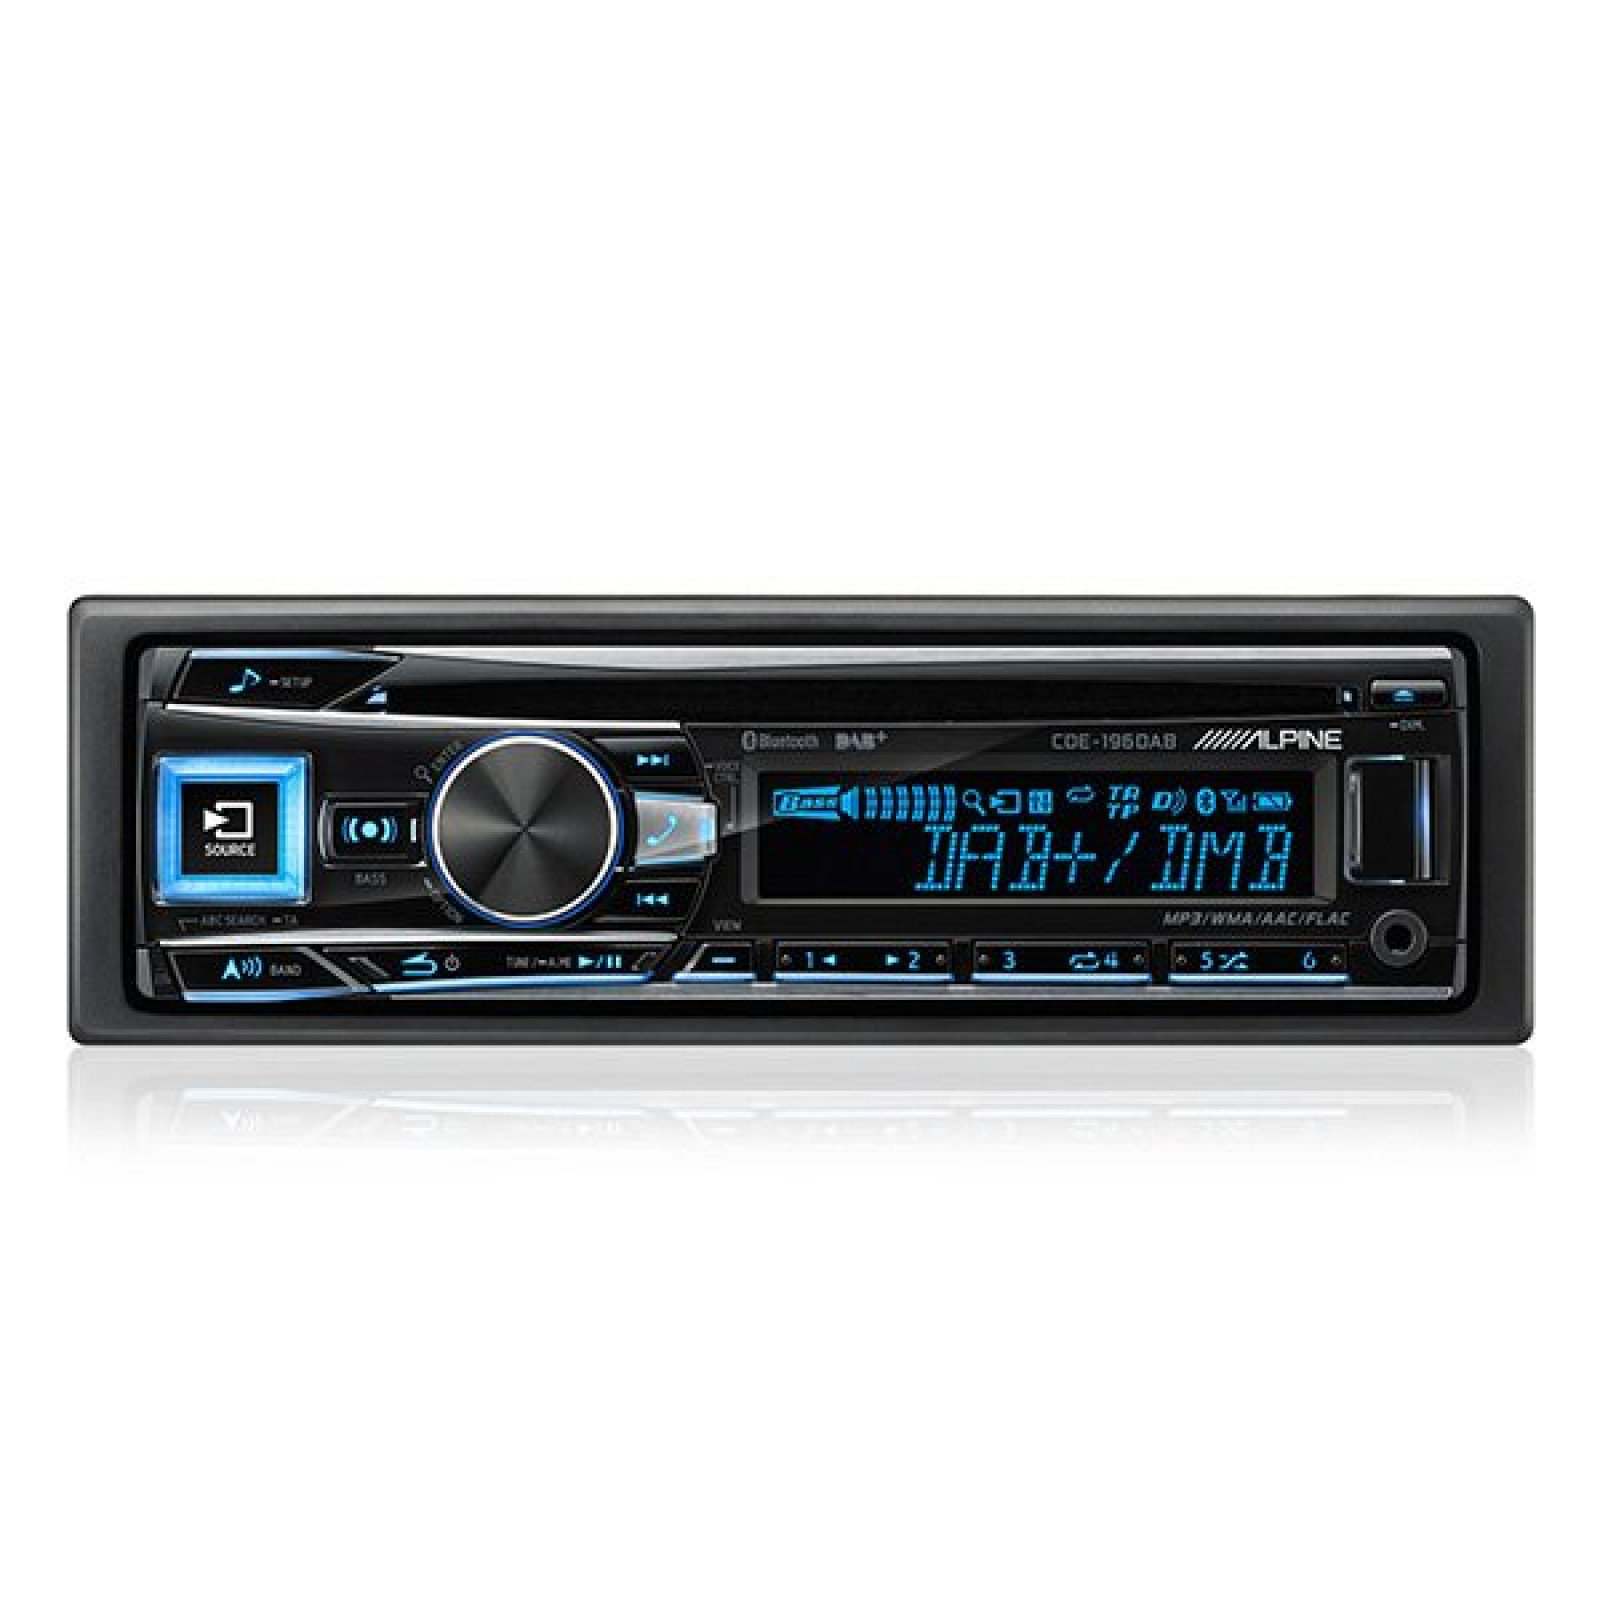 alpine cde 196dab single din radio cd mp3 bluetooth usb player stereo head unit the sl shop. Black Bedroom Furniture Sets. Home Design Ideas